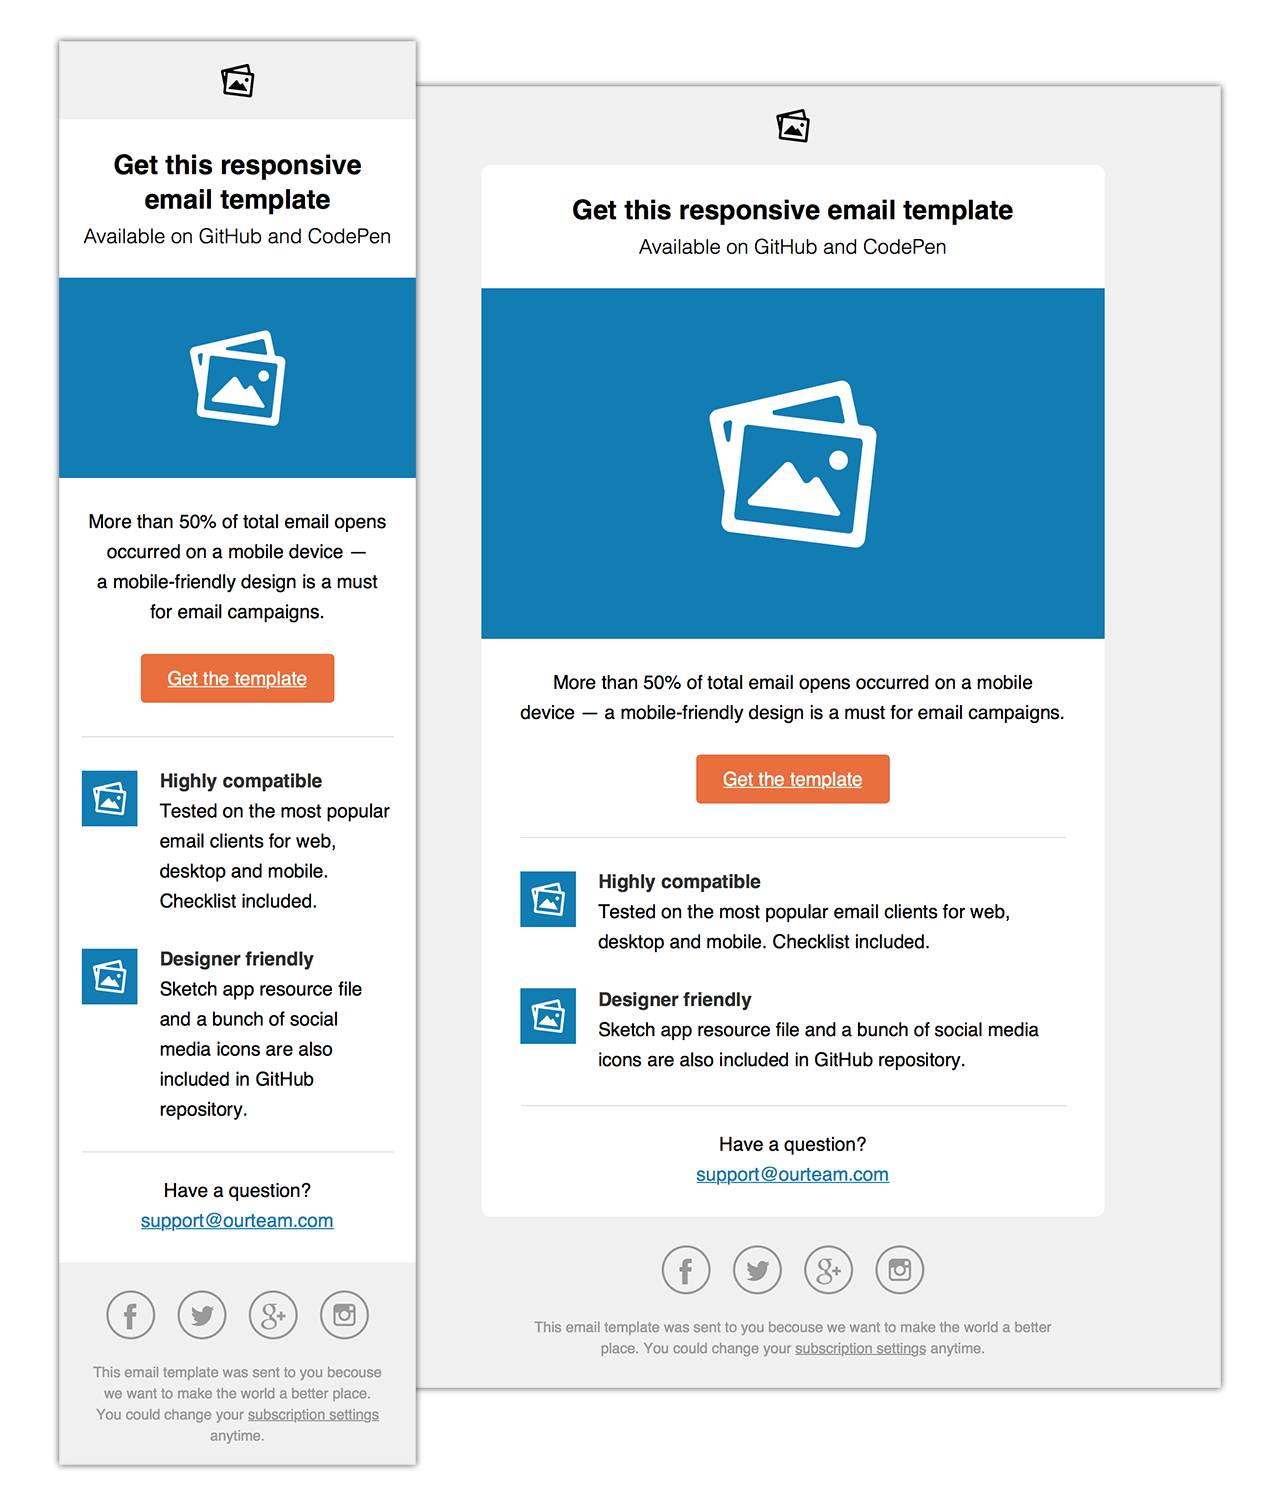 Responsive HTML email template with Sketch app resource